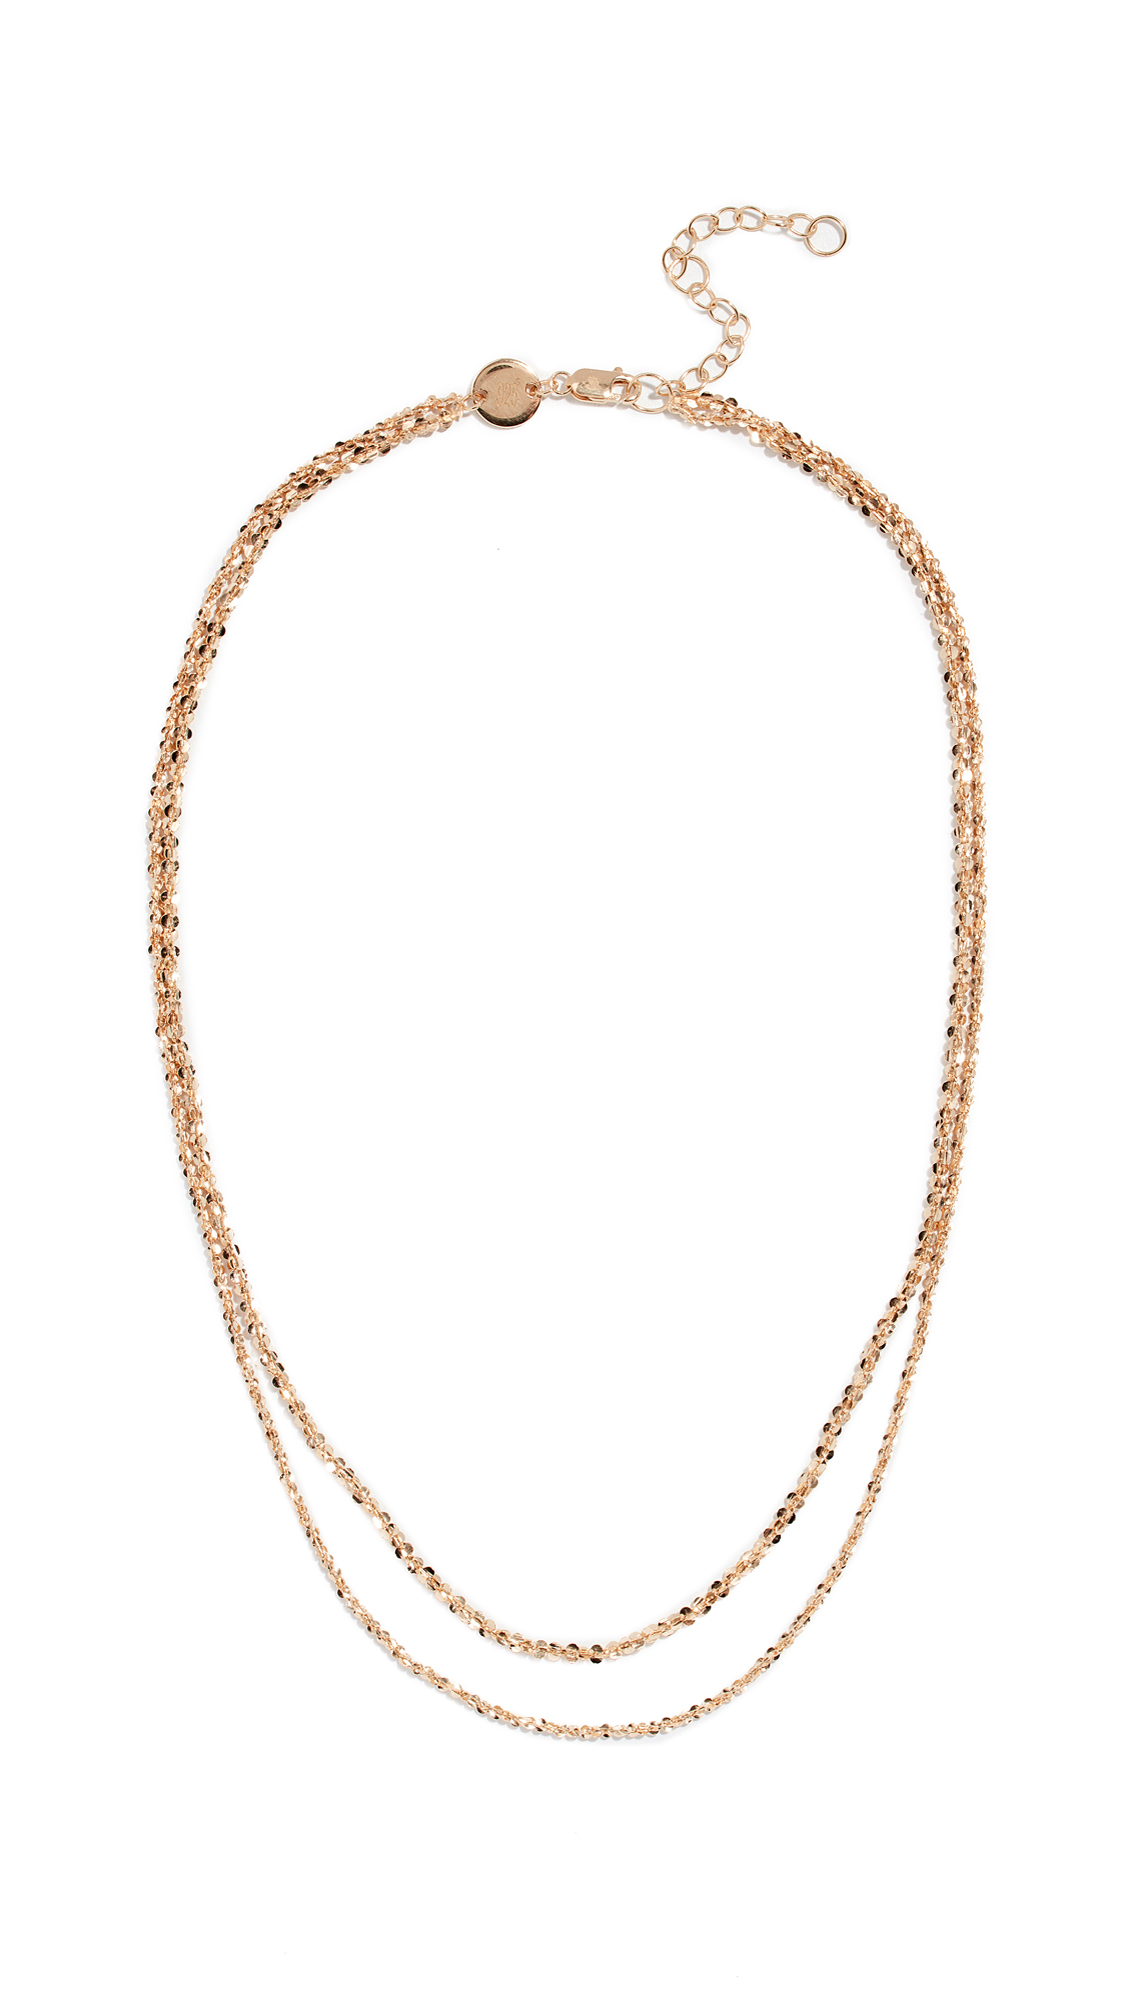 JENNIFER ZEUNER JEWELRY Wes Necklace in Yellow Gold